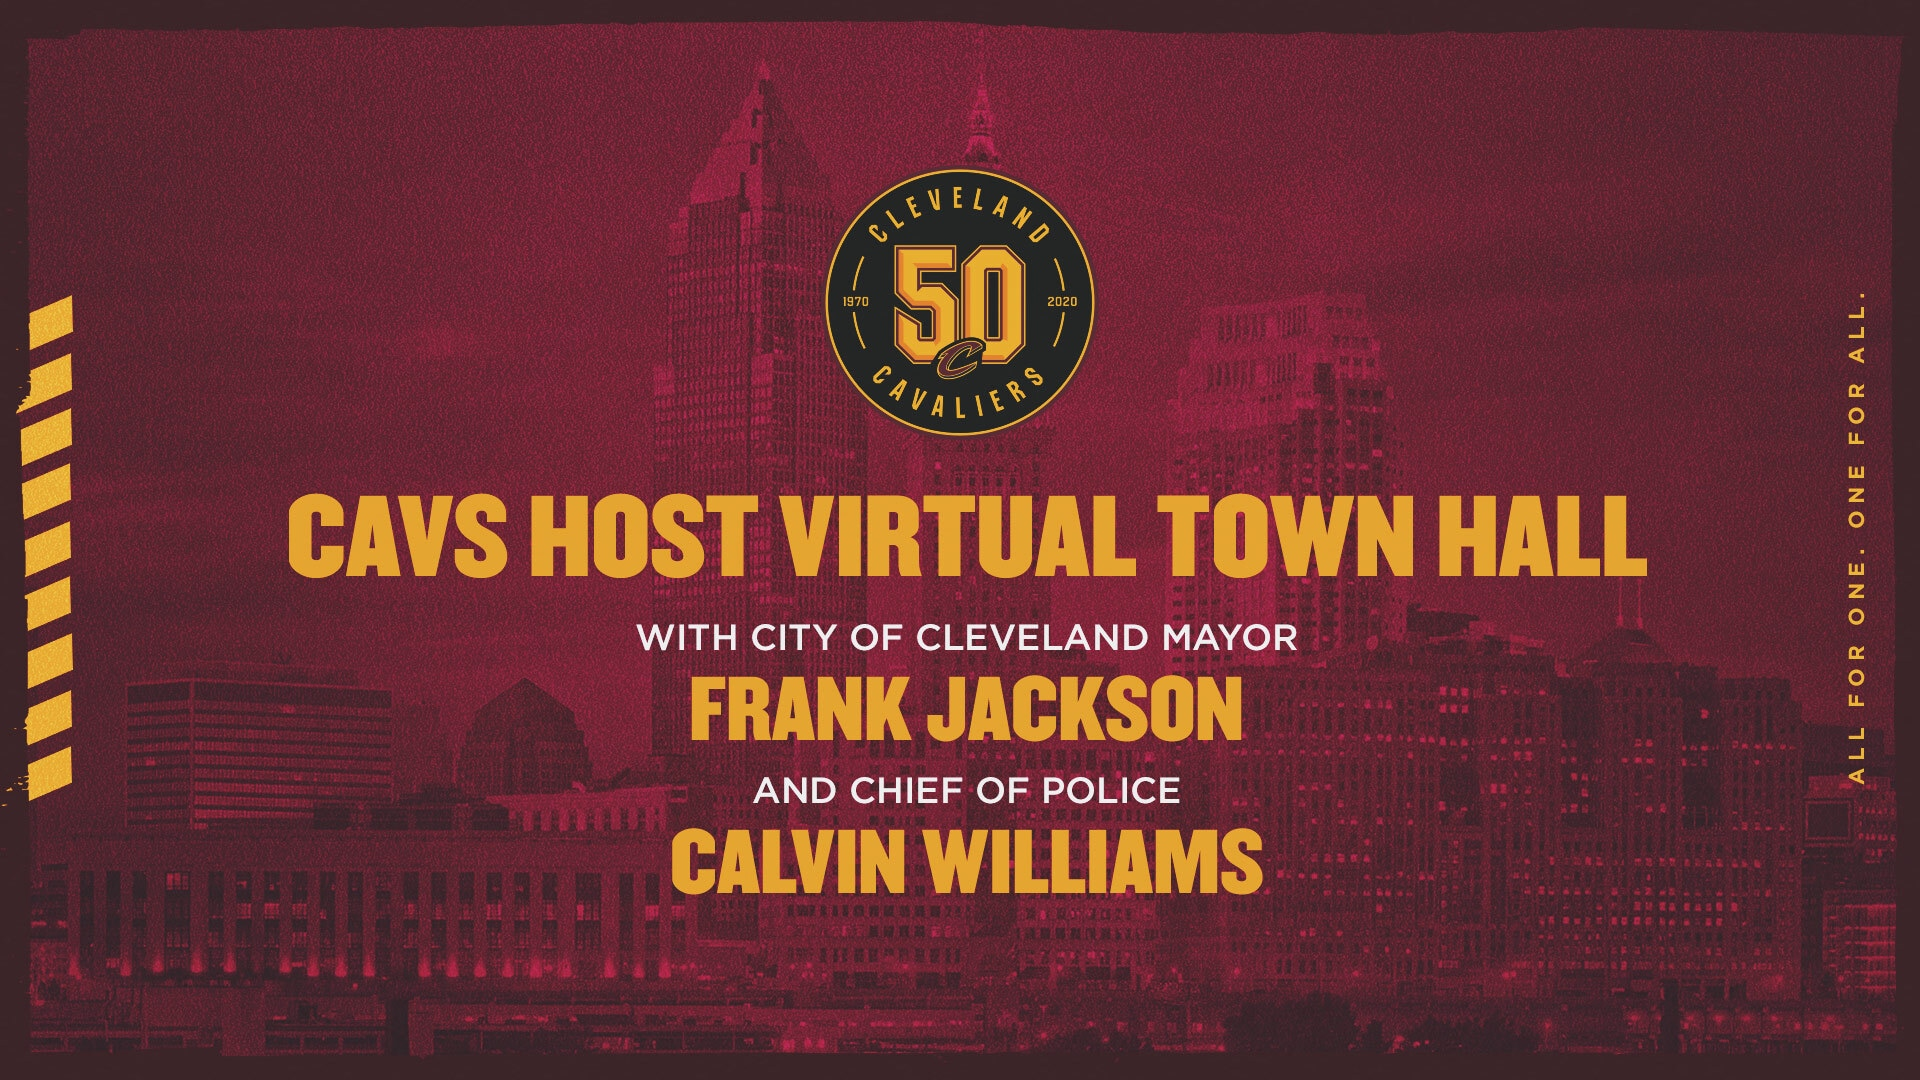 Cavs Host Virtual Town Hall